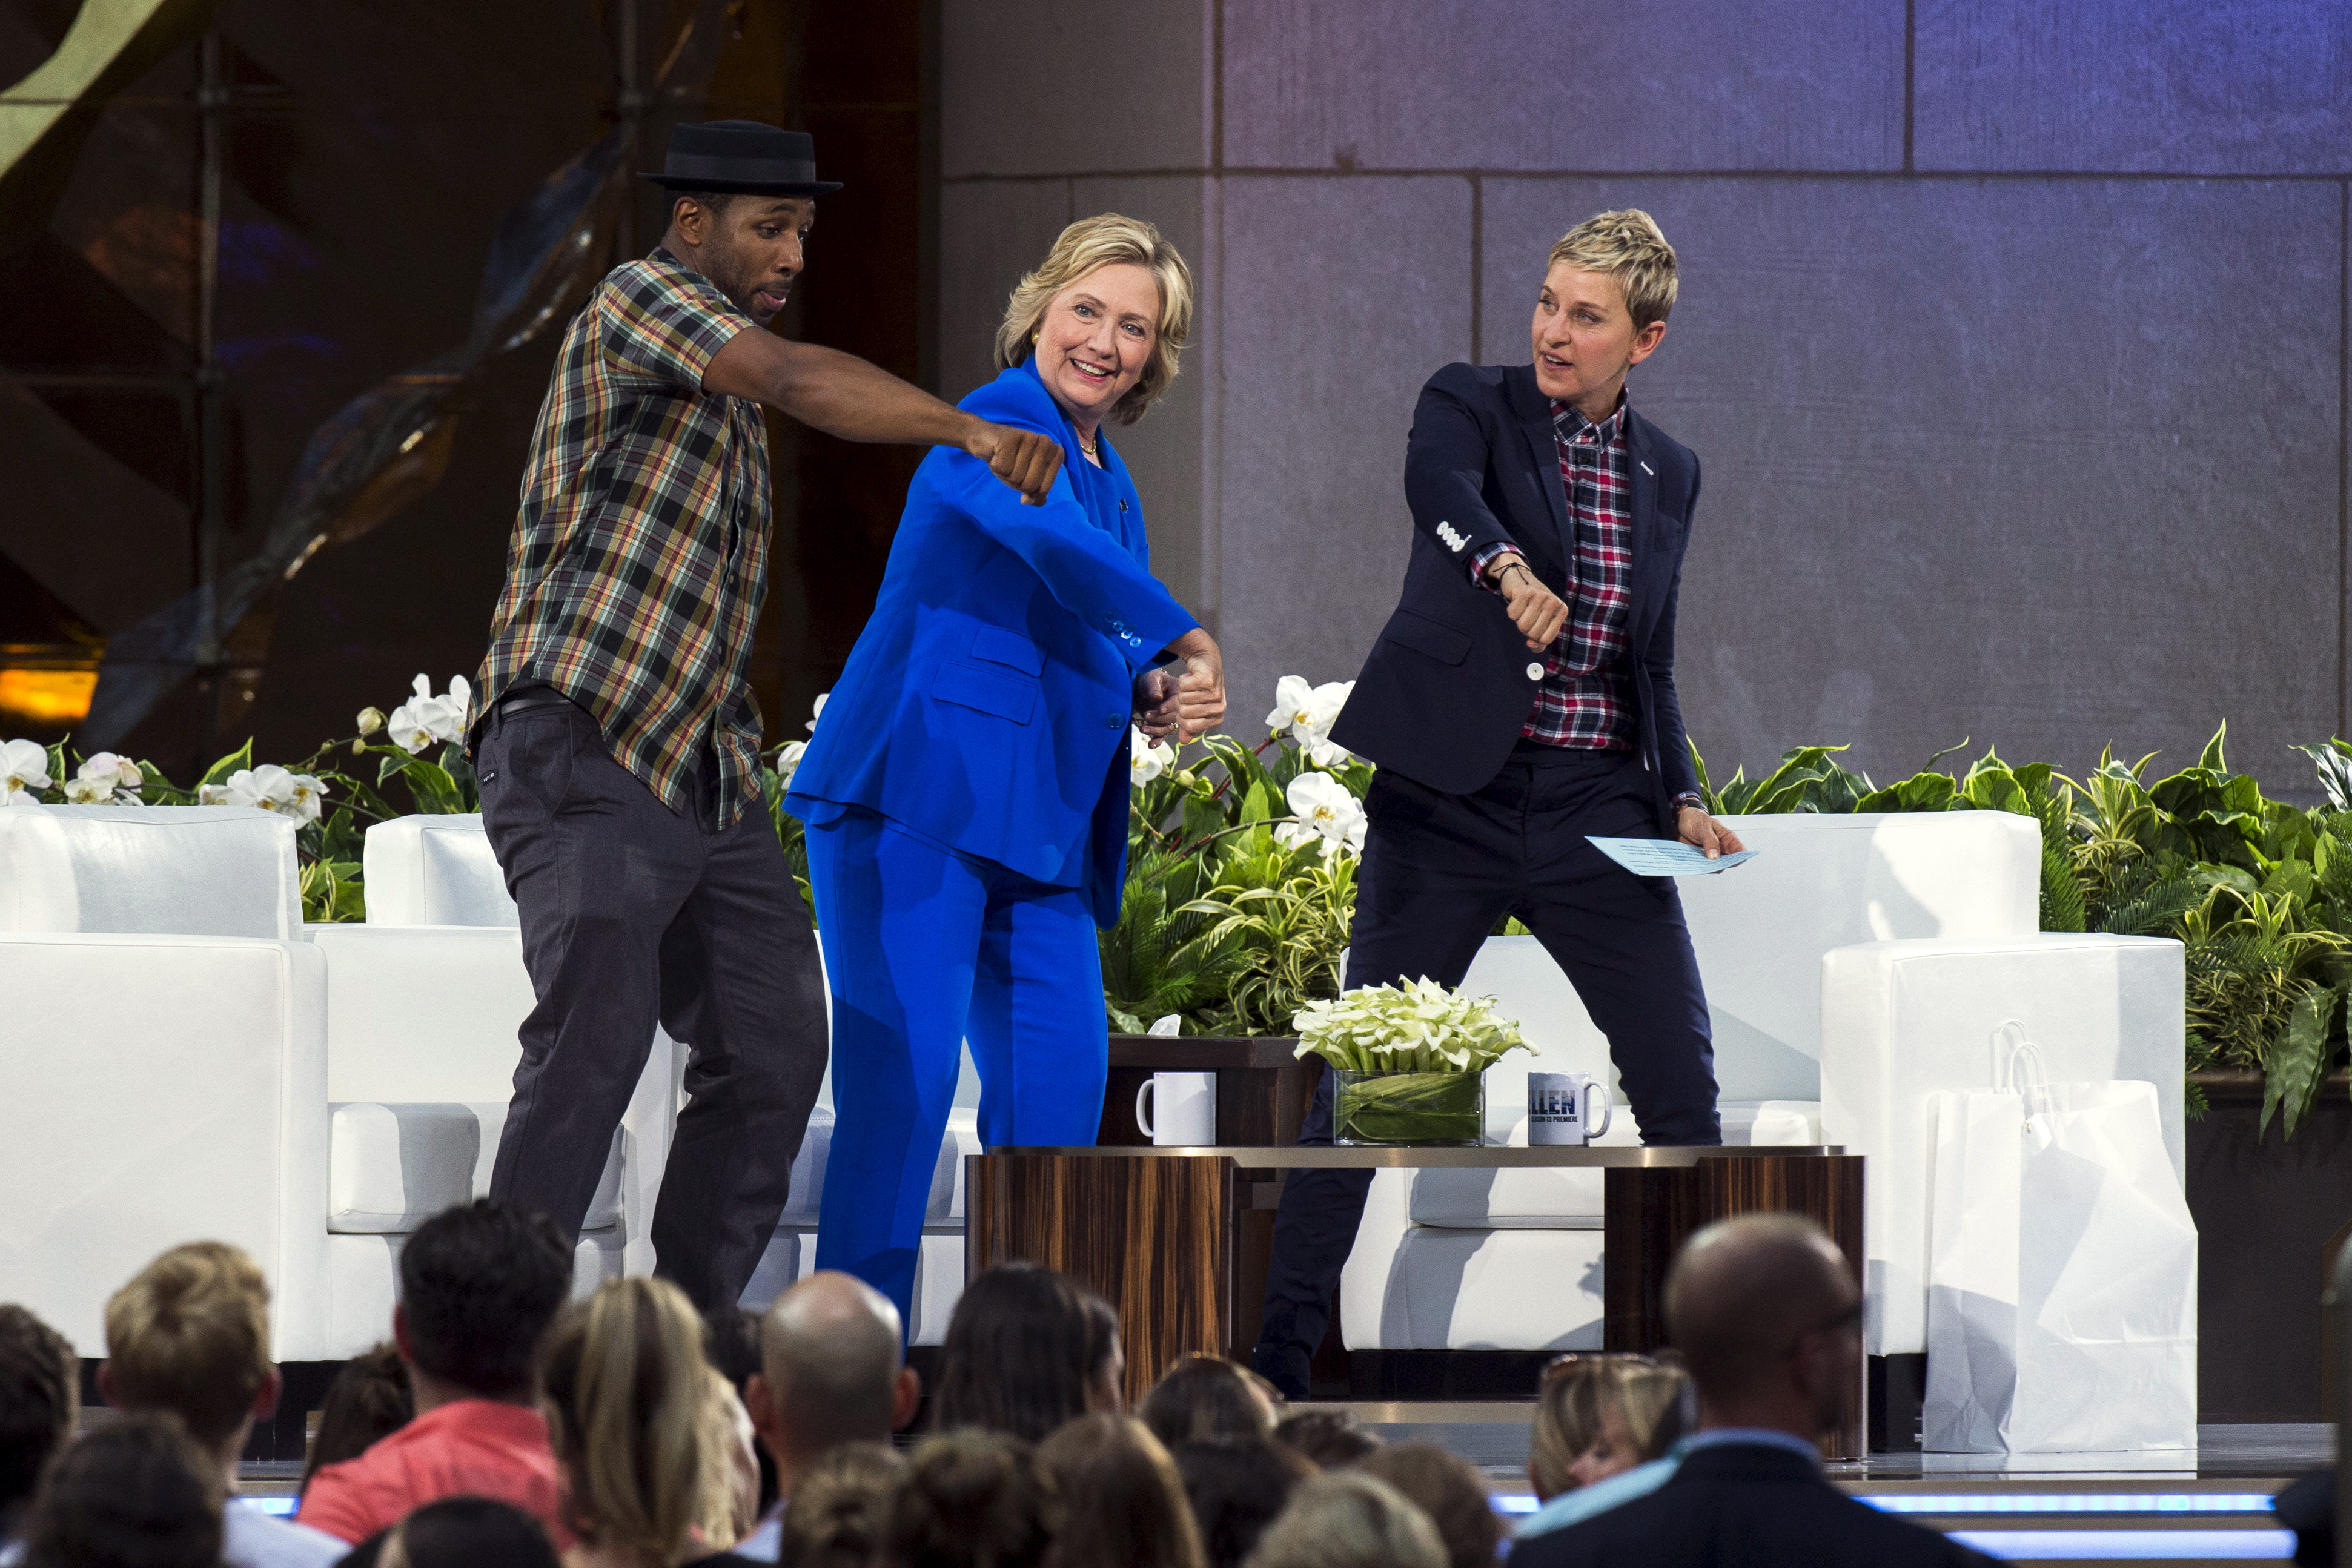 U.S. Democratic presidential candidate Hillary Clinton dances with DJ Stephen  Twitch  Boss, left, and television host Ellen DeGeneres, right, during a taping of The Ellen DeGeneres Show in New York Sept. 8, 2015